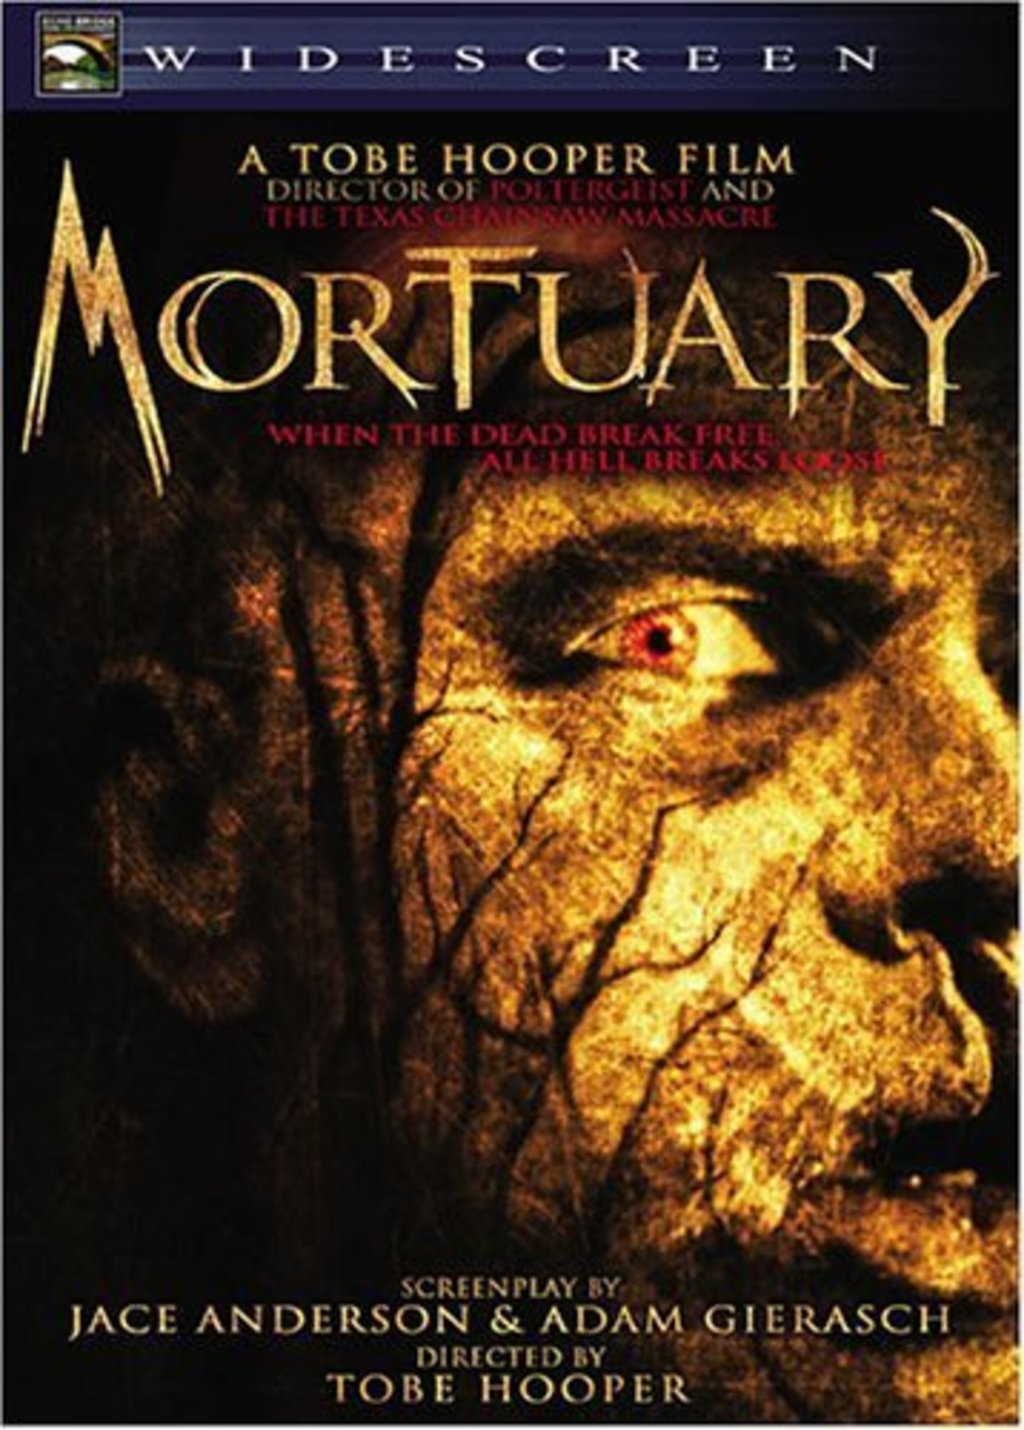 Watch Mortuary on Netflix Today! | NetflixMovies.com